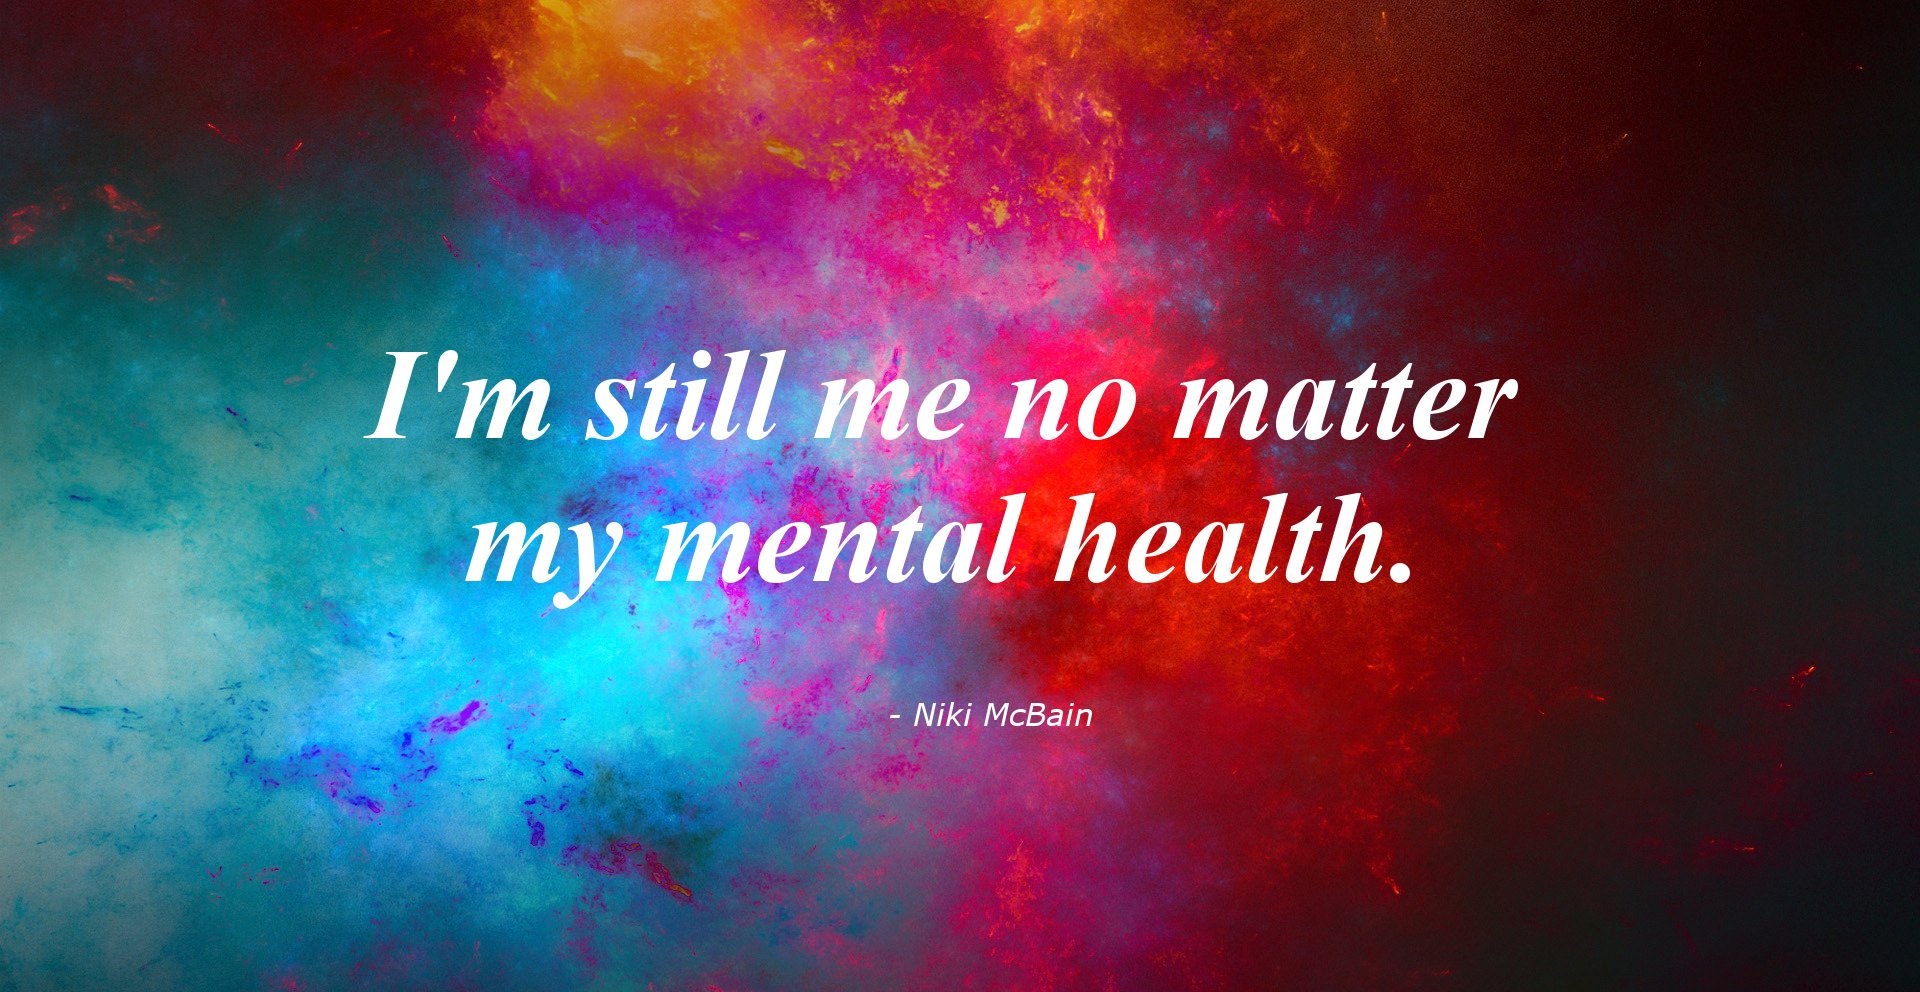 I Am Still Me No Matter My Mental Health by Niki McBain Adapted from Google image https://imgur.com/gallery/DFDeq